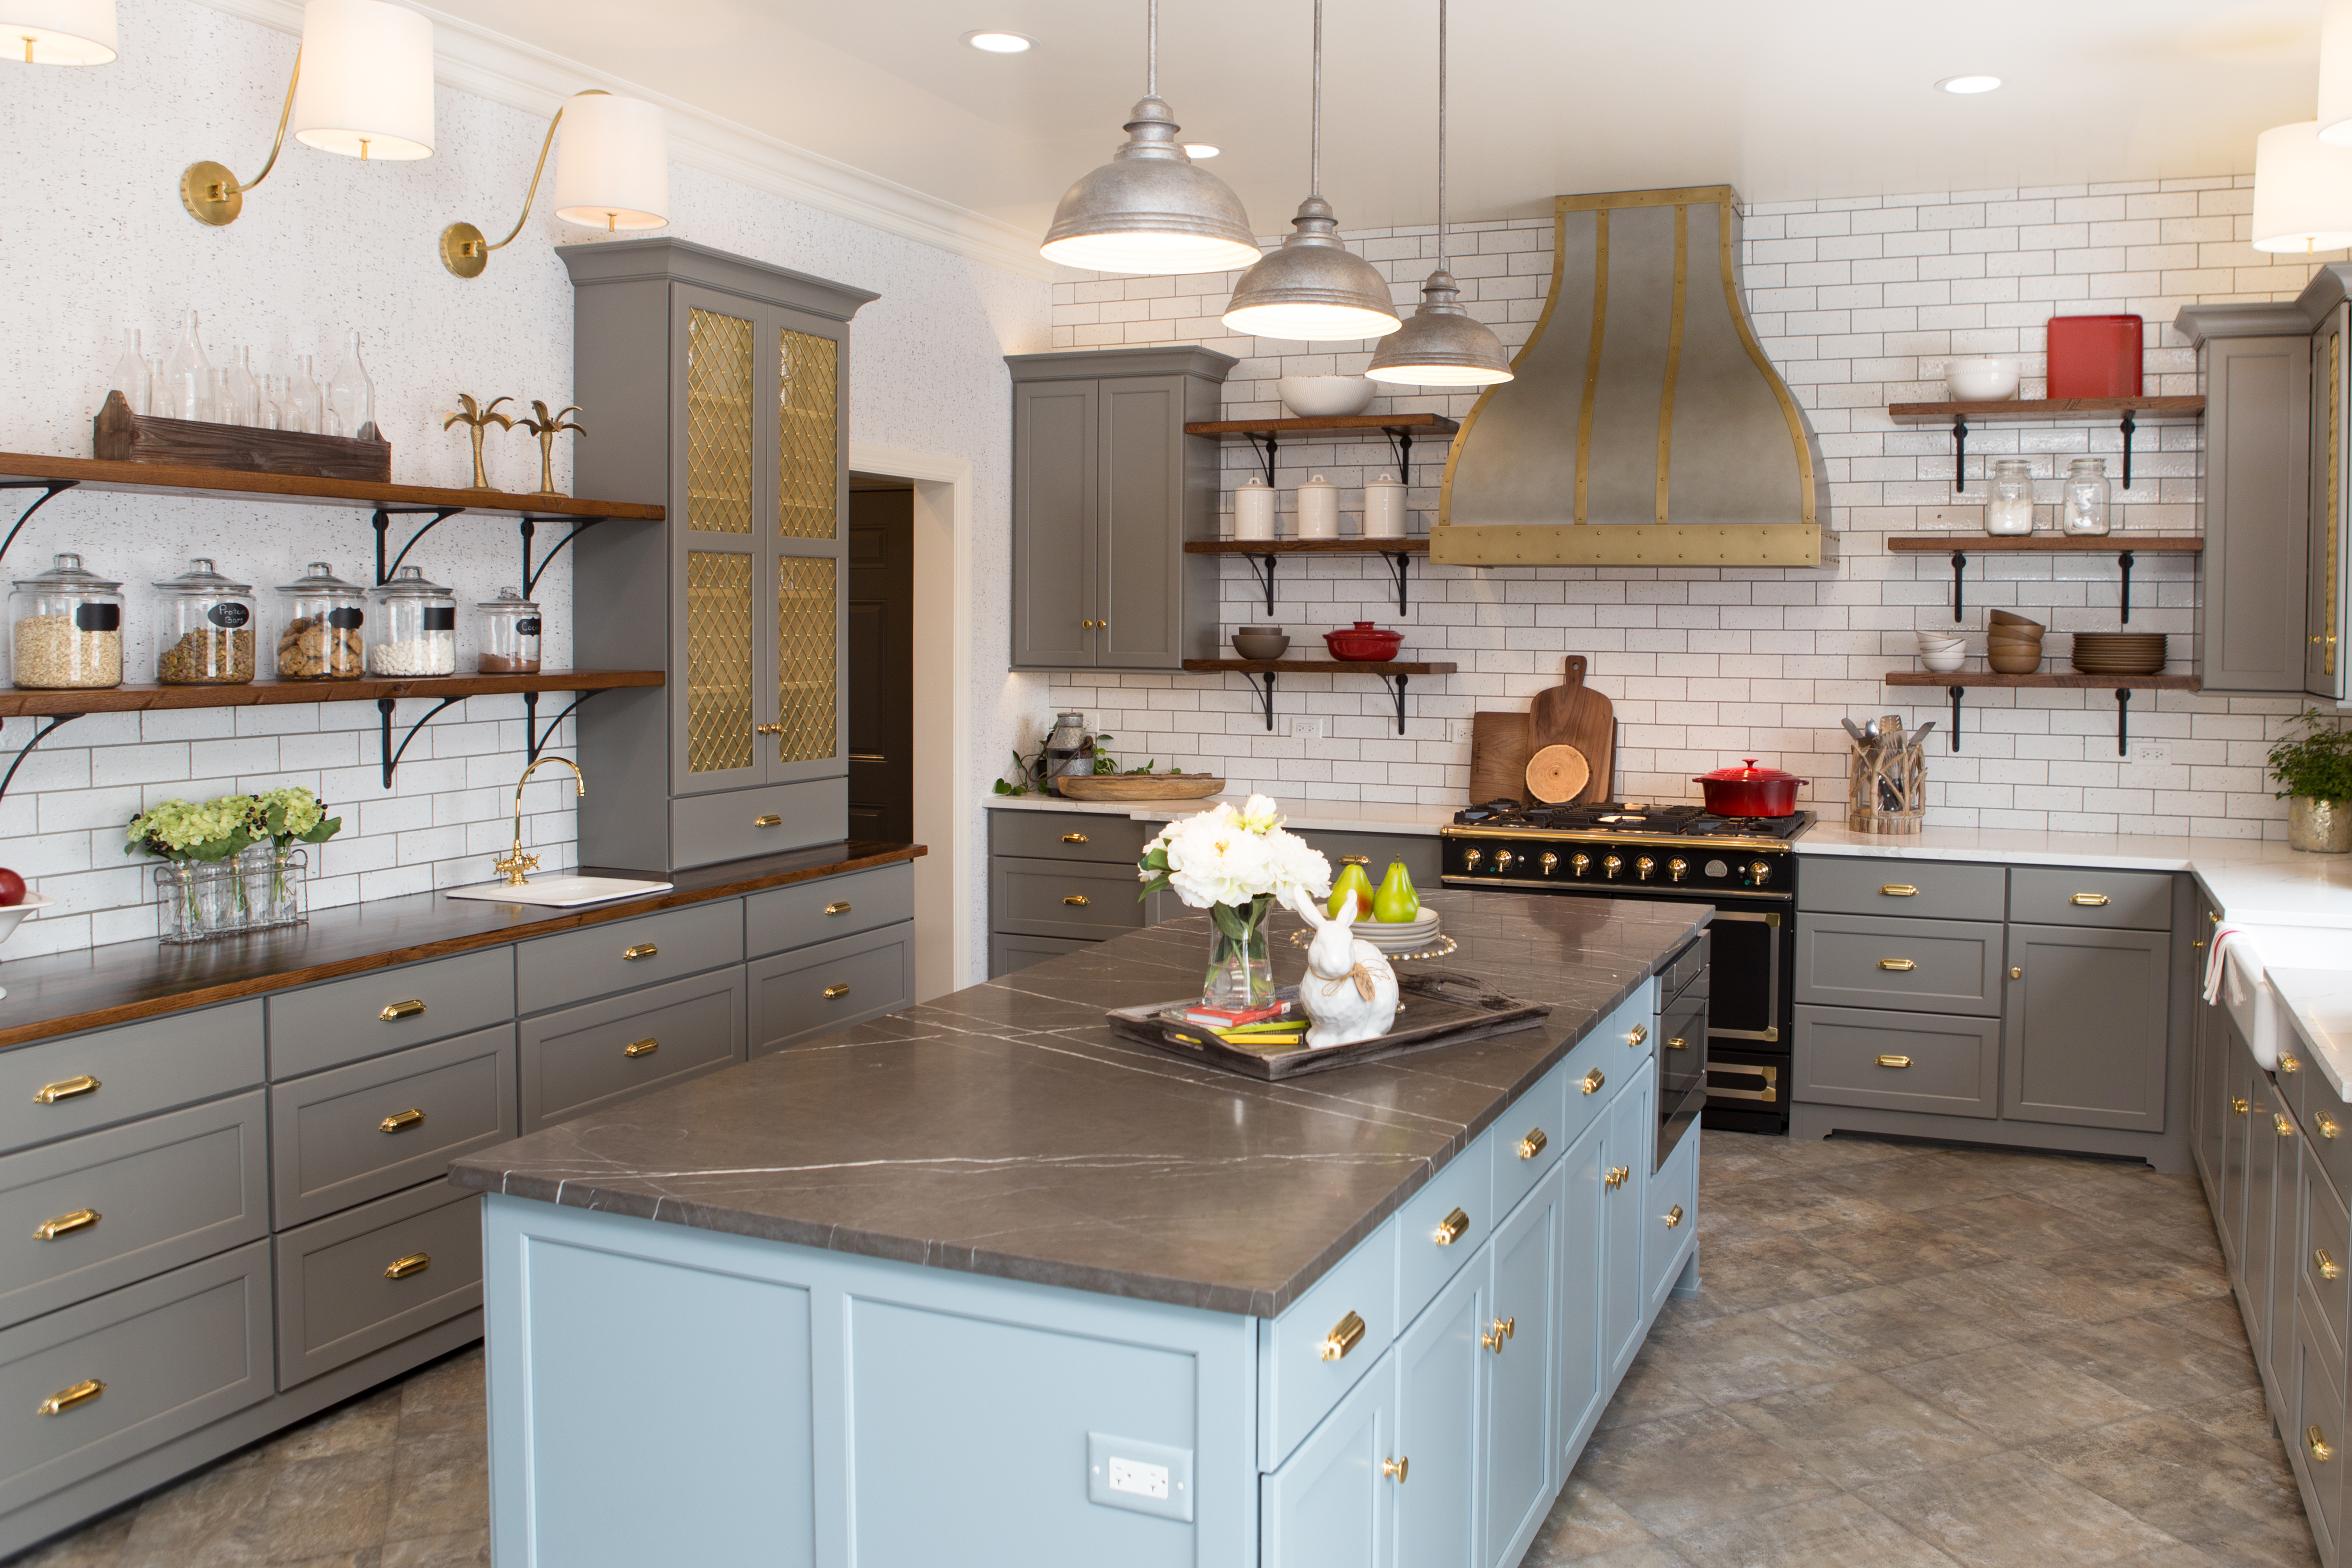 After photo of the completed ktichen design renovation, featuring Dura Supreme Cabinetry.